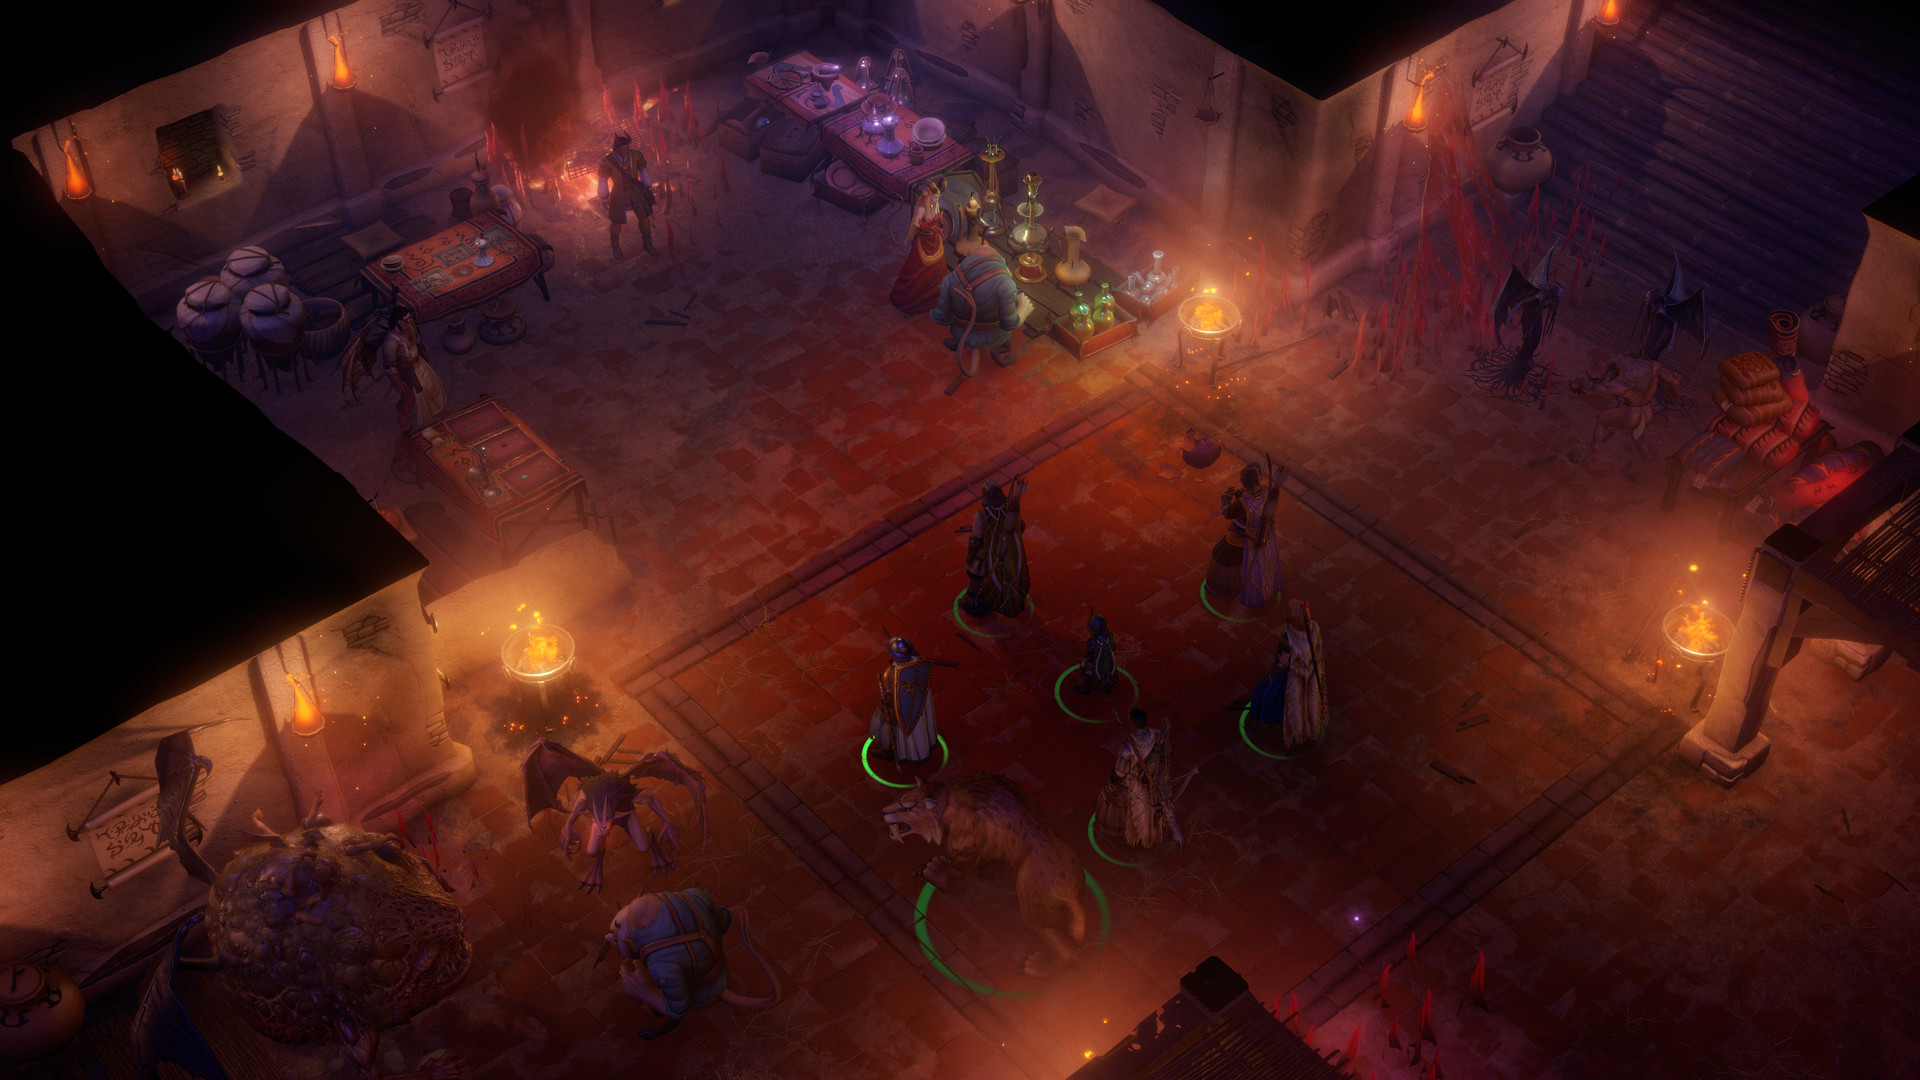 pathfinder-wrath-of-the-righteous-mythic-edition-pc-screenshot-1